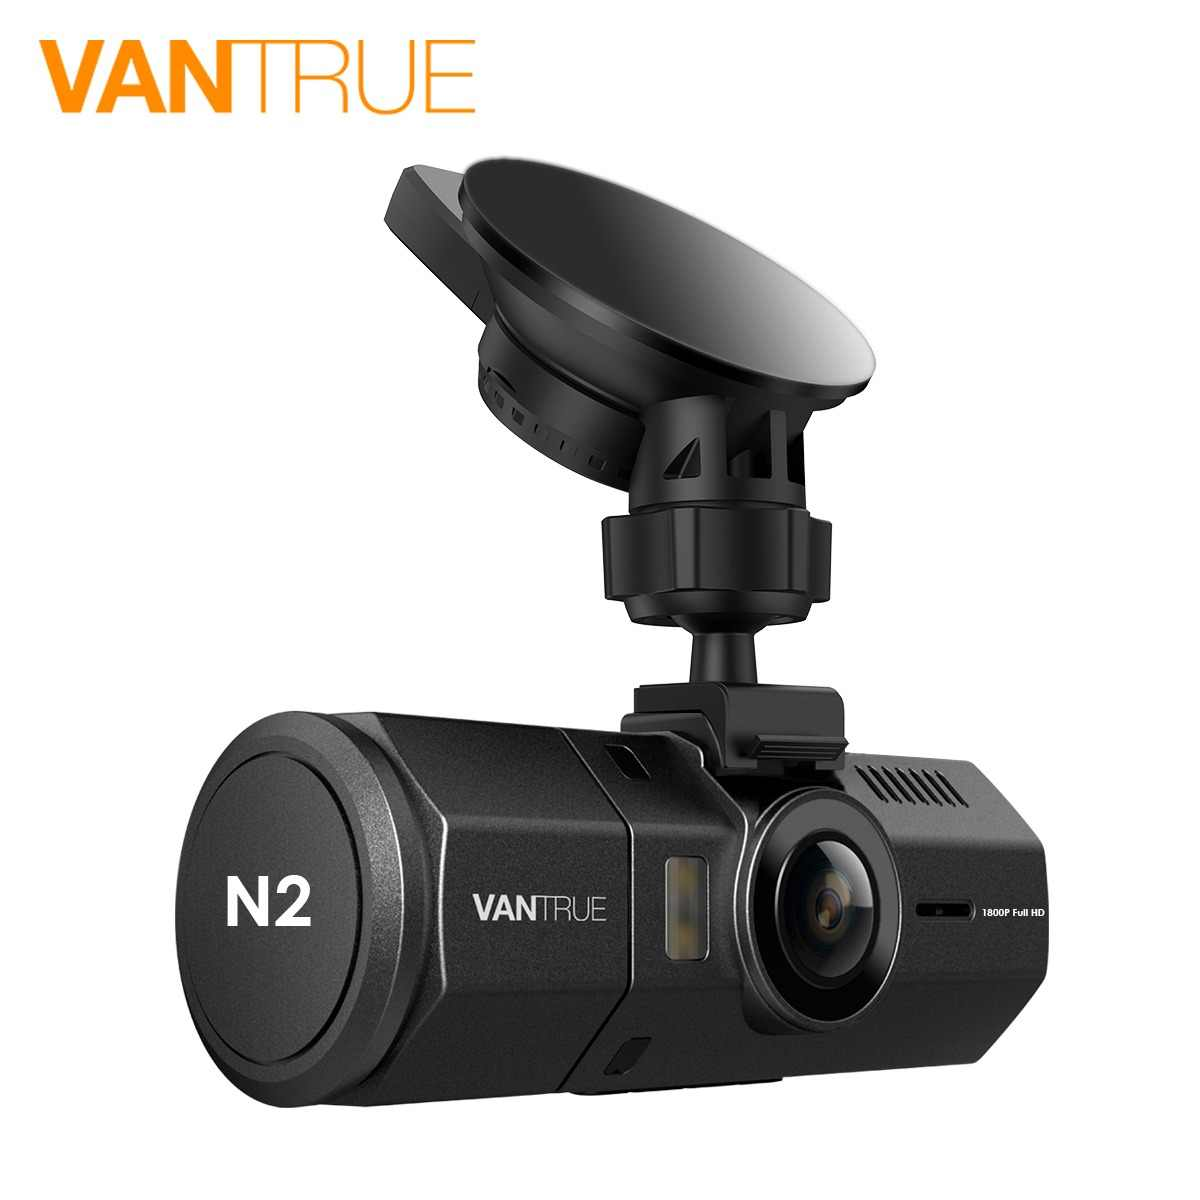 "Vantrue N2 Dash Camera Dual Lens Uber Car DVR Cam 1.5"" LCD 1080P Video Register Recorder with G-Sensor Parking Mode Night Vision"